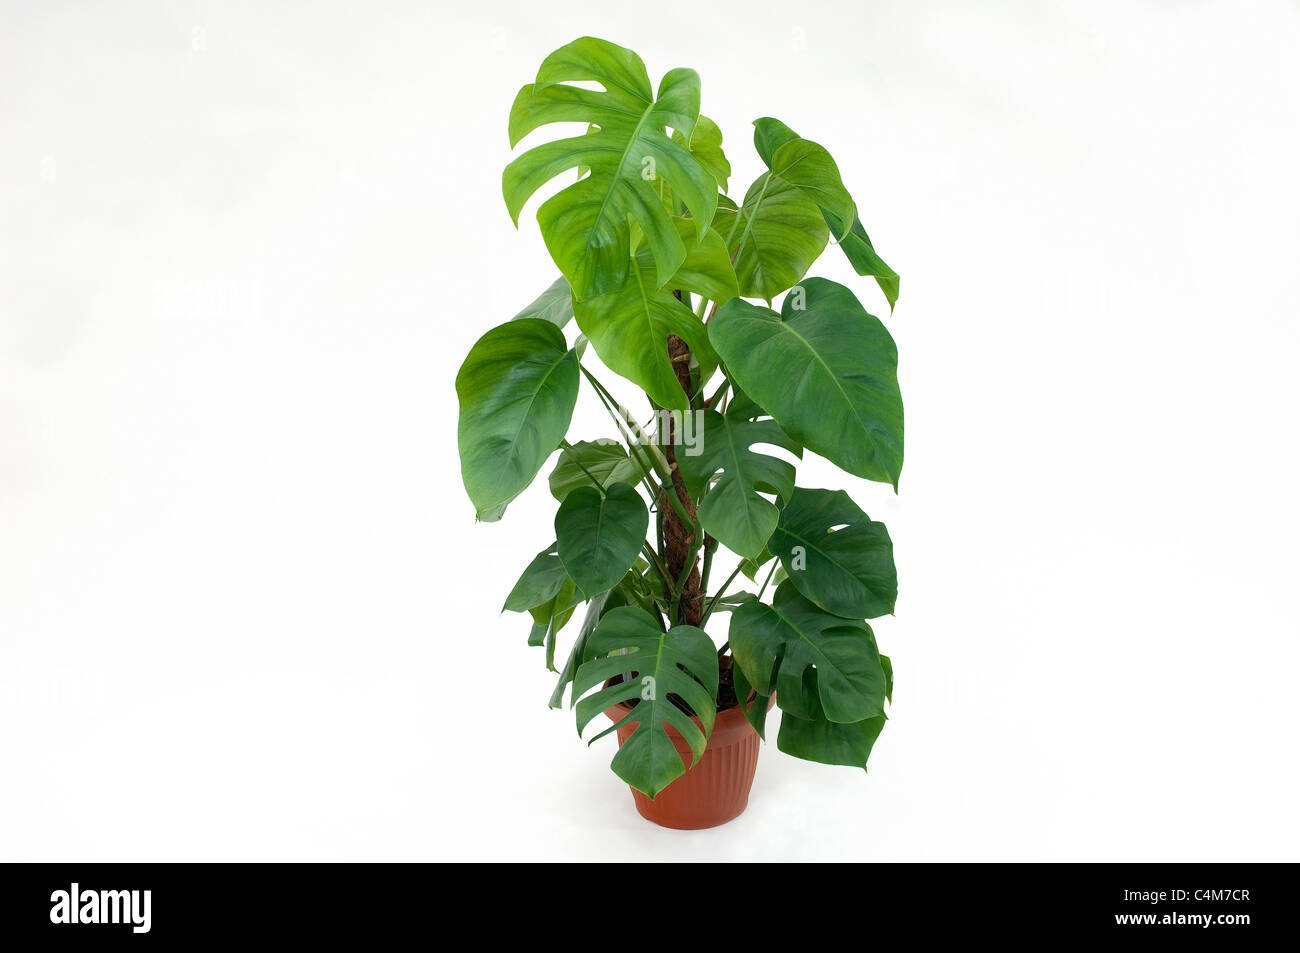 Cheese Plant (Monstera deliciosa). Potted plant. Studio picture against a white background - Stock Image